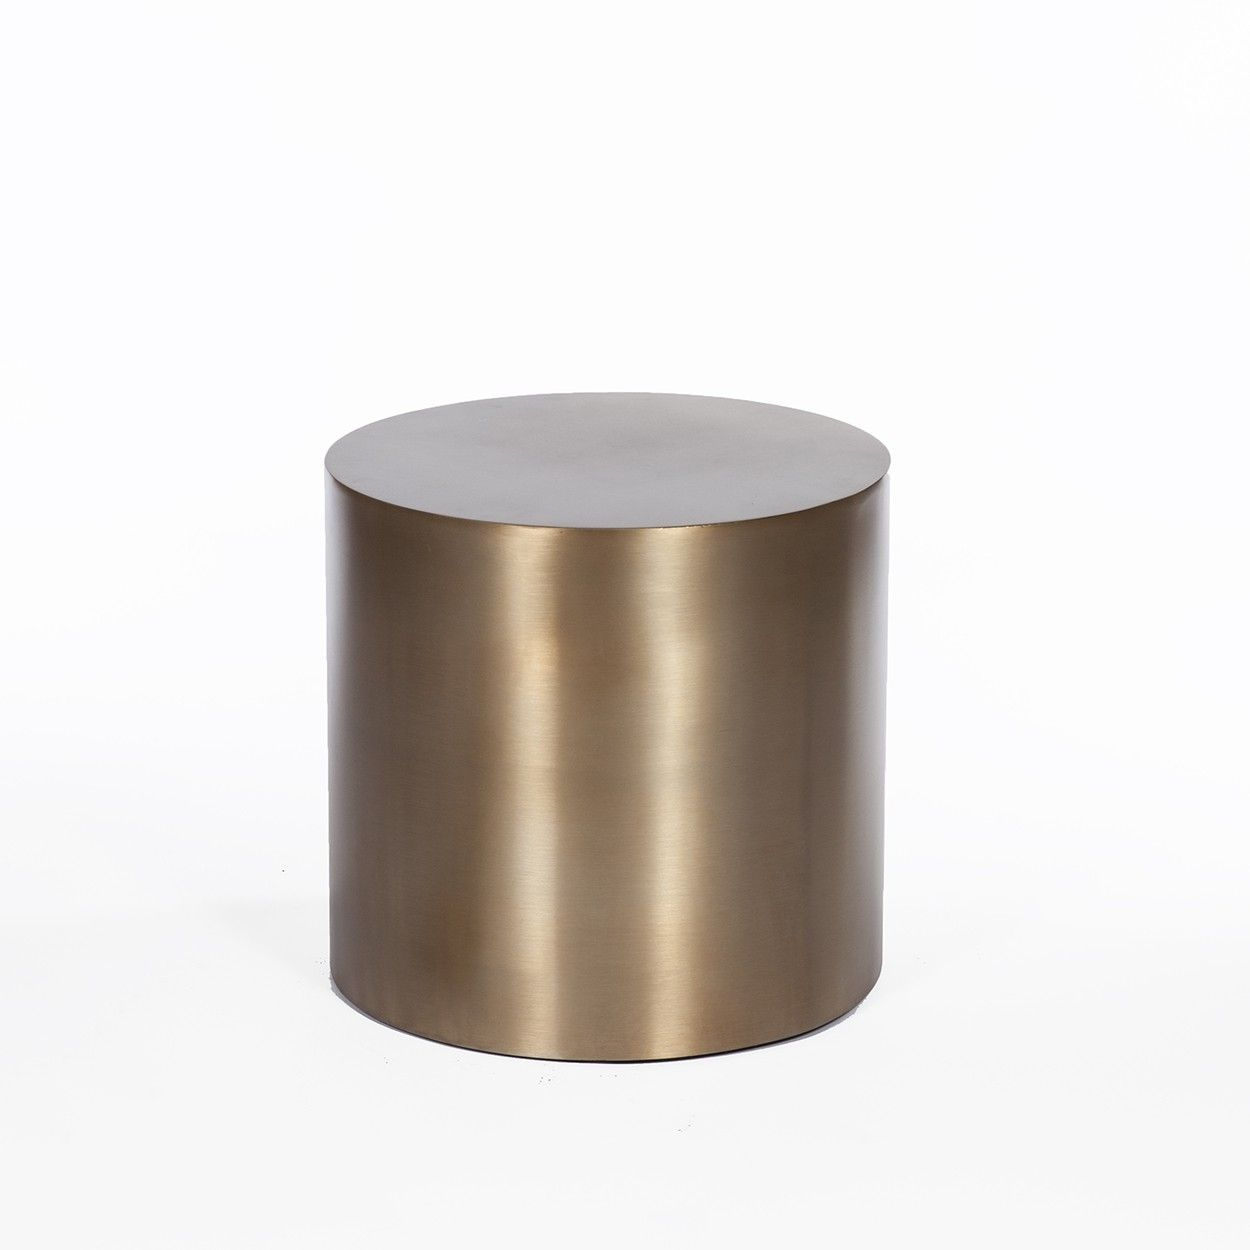 Brass Drum Side Table Round Products Pinterest Drum Side - Brass drum side table